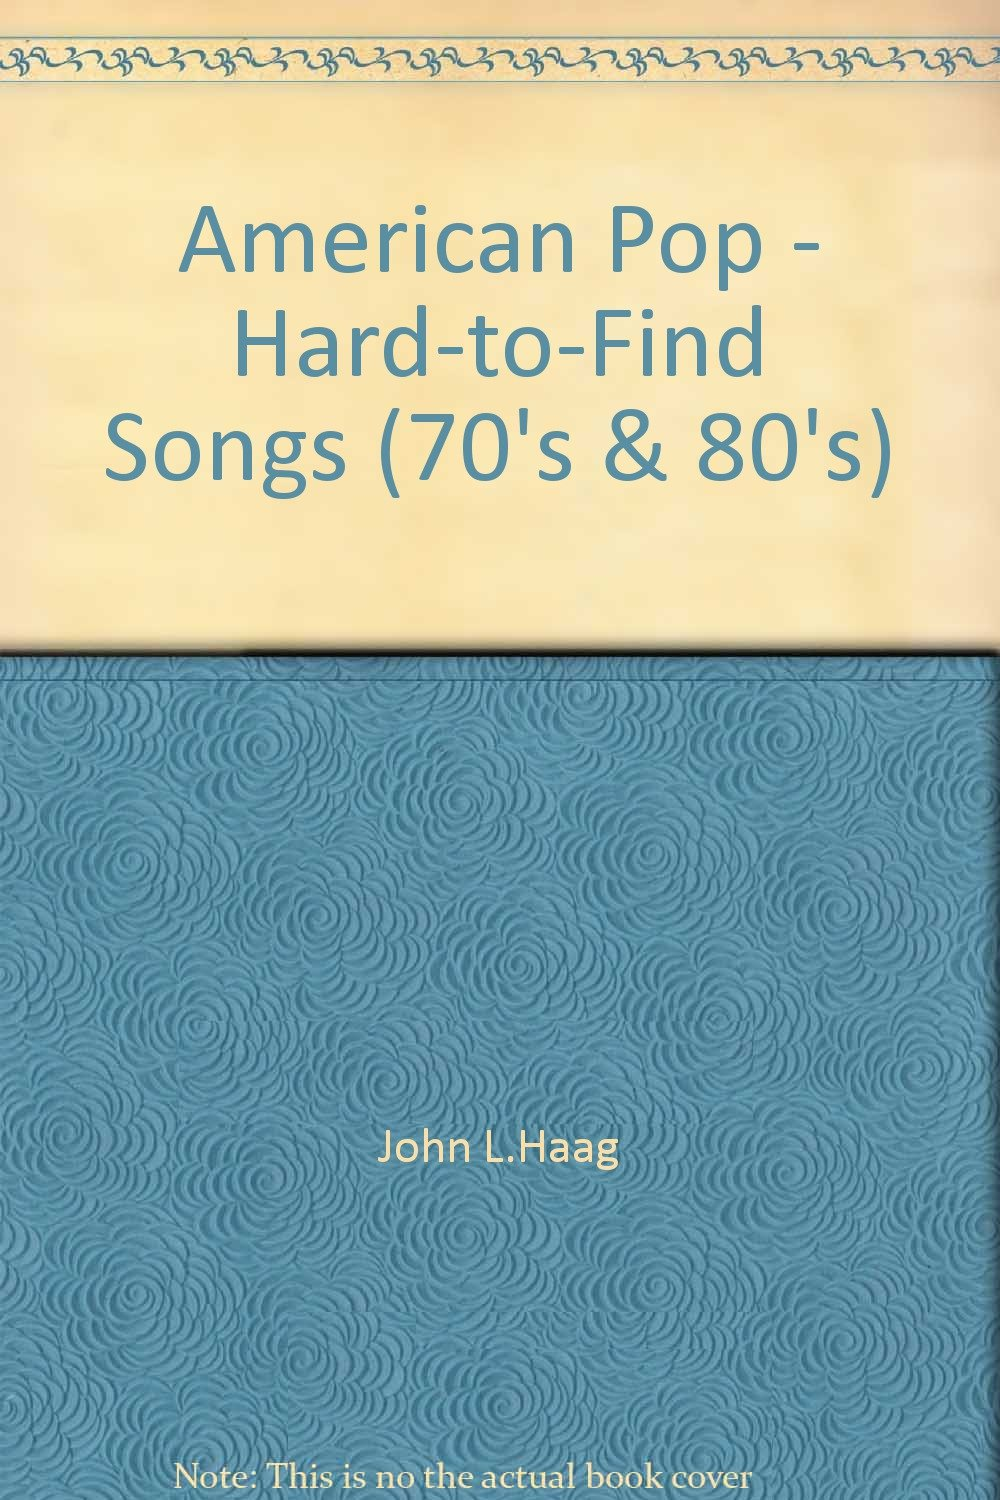 American Pop - Hard-to-Find Songs (70's & 80's): John L Haag